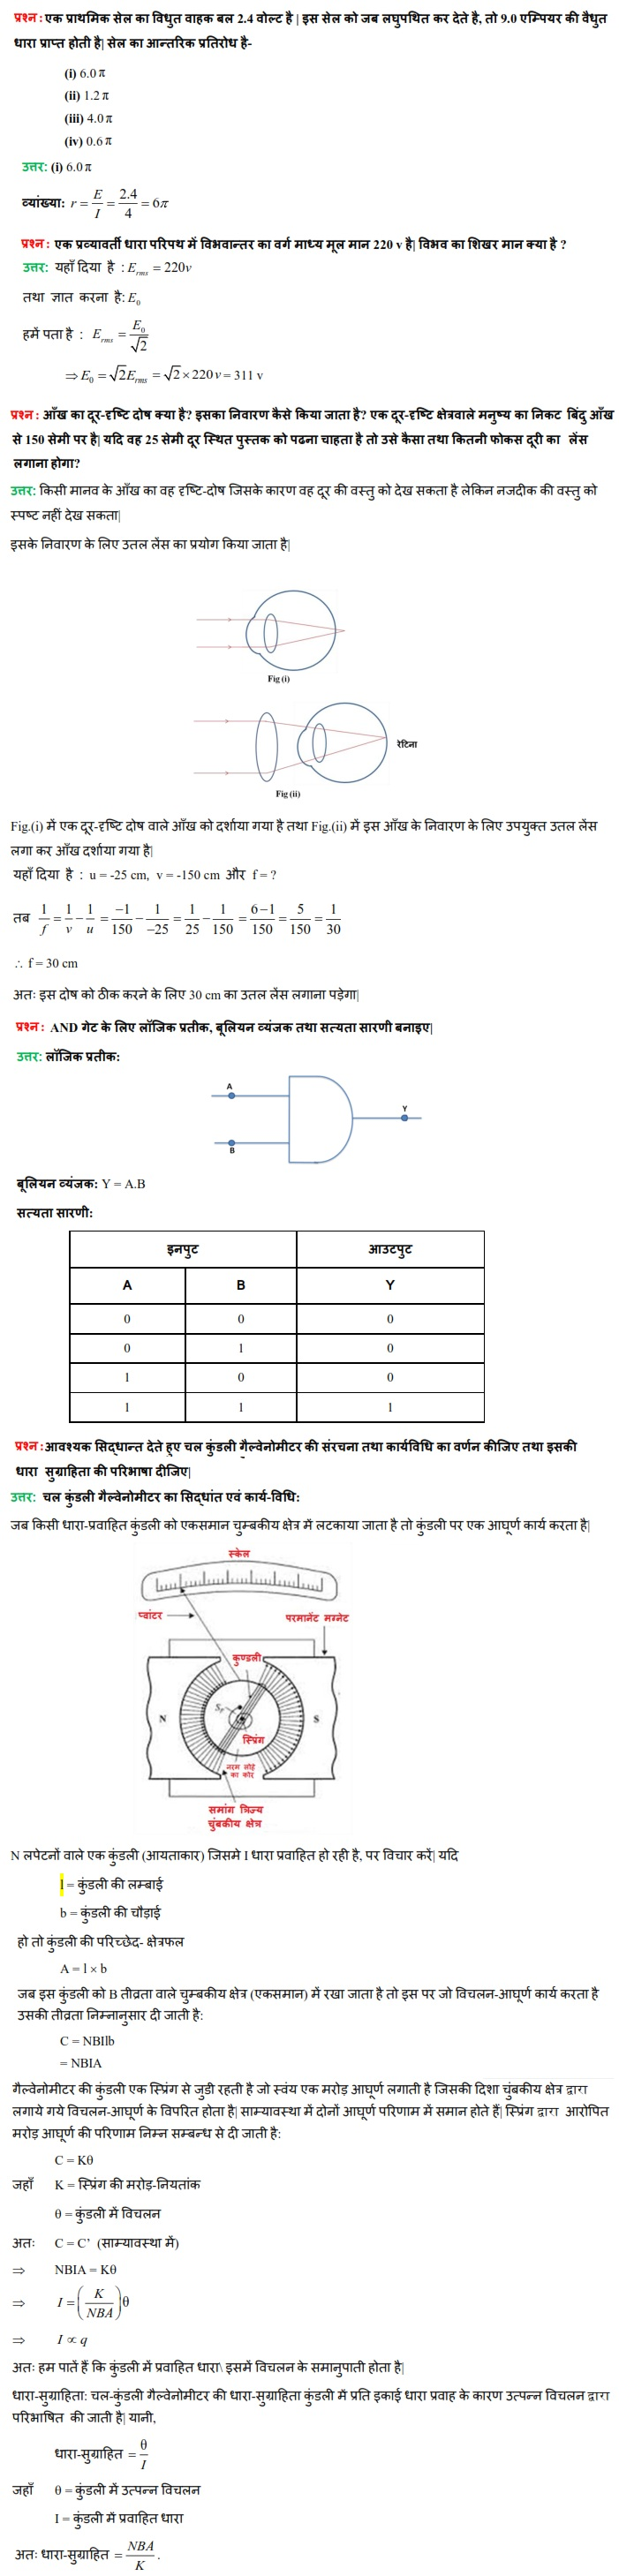 Up board class 12th physics ii solved question paper 2014 up board class 12th physics second solved question paper set 1 2014 malvernweather